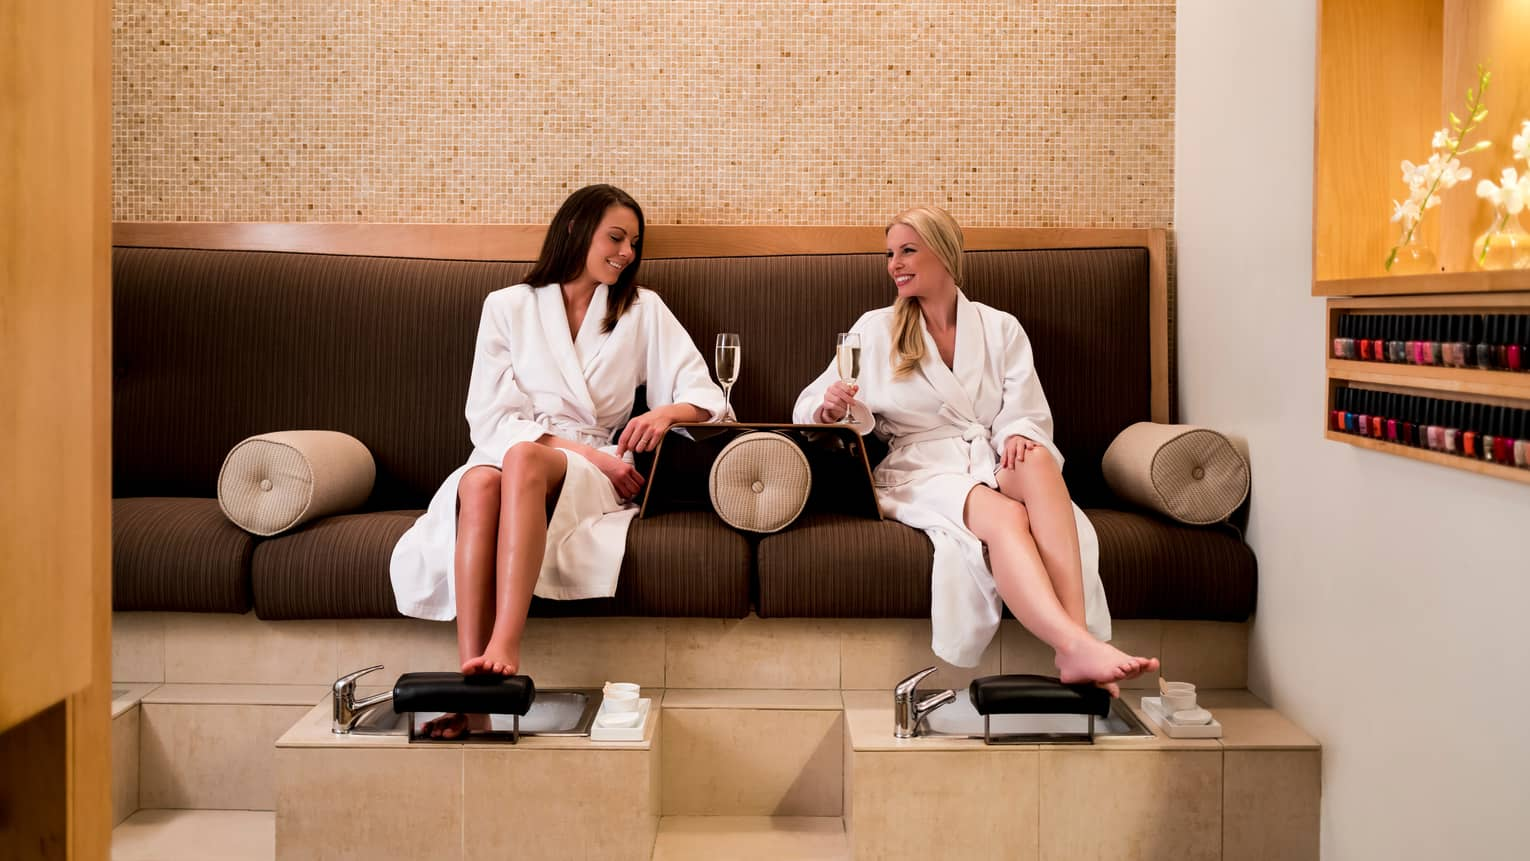 Two women in white bathrobes hold Champagne glasses, sit on spa lounge sofas